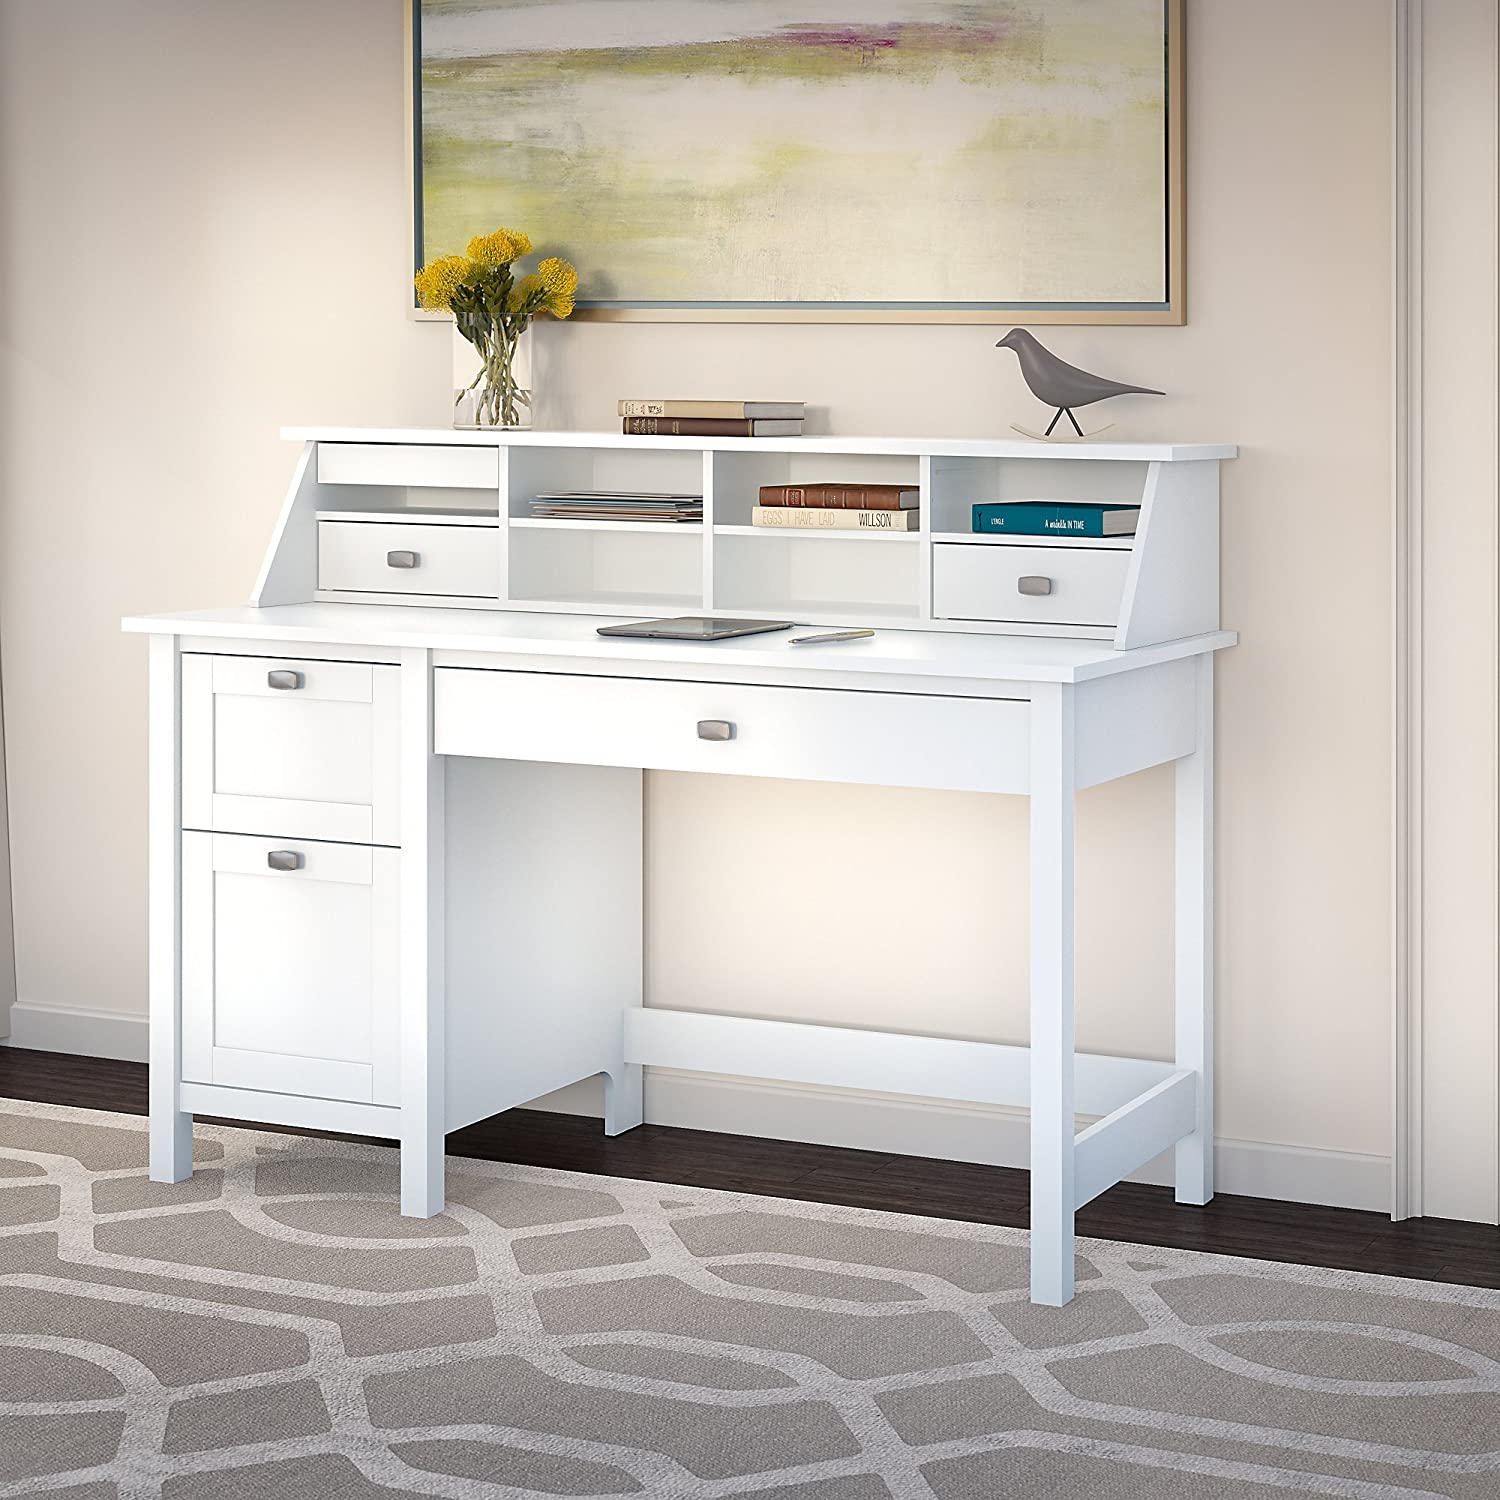 Awesome Broadview Pure White Desk With Drawers And Organizer Home Interior And Landscaping Dextoversignezvosmurscom